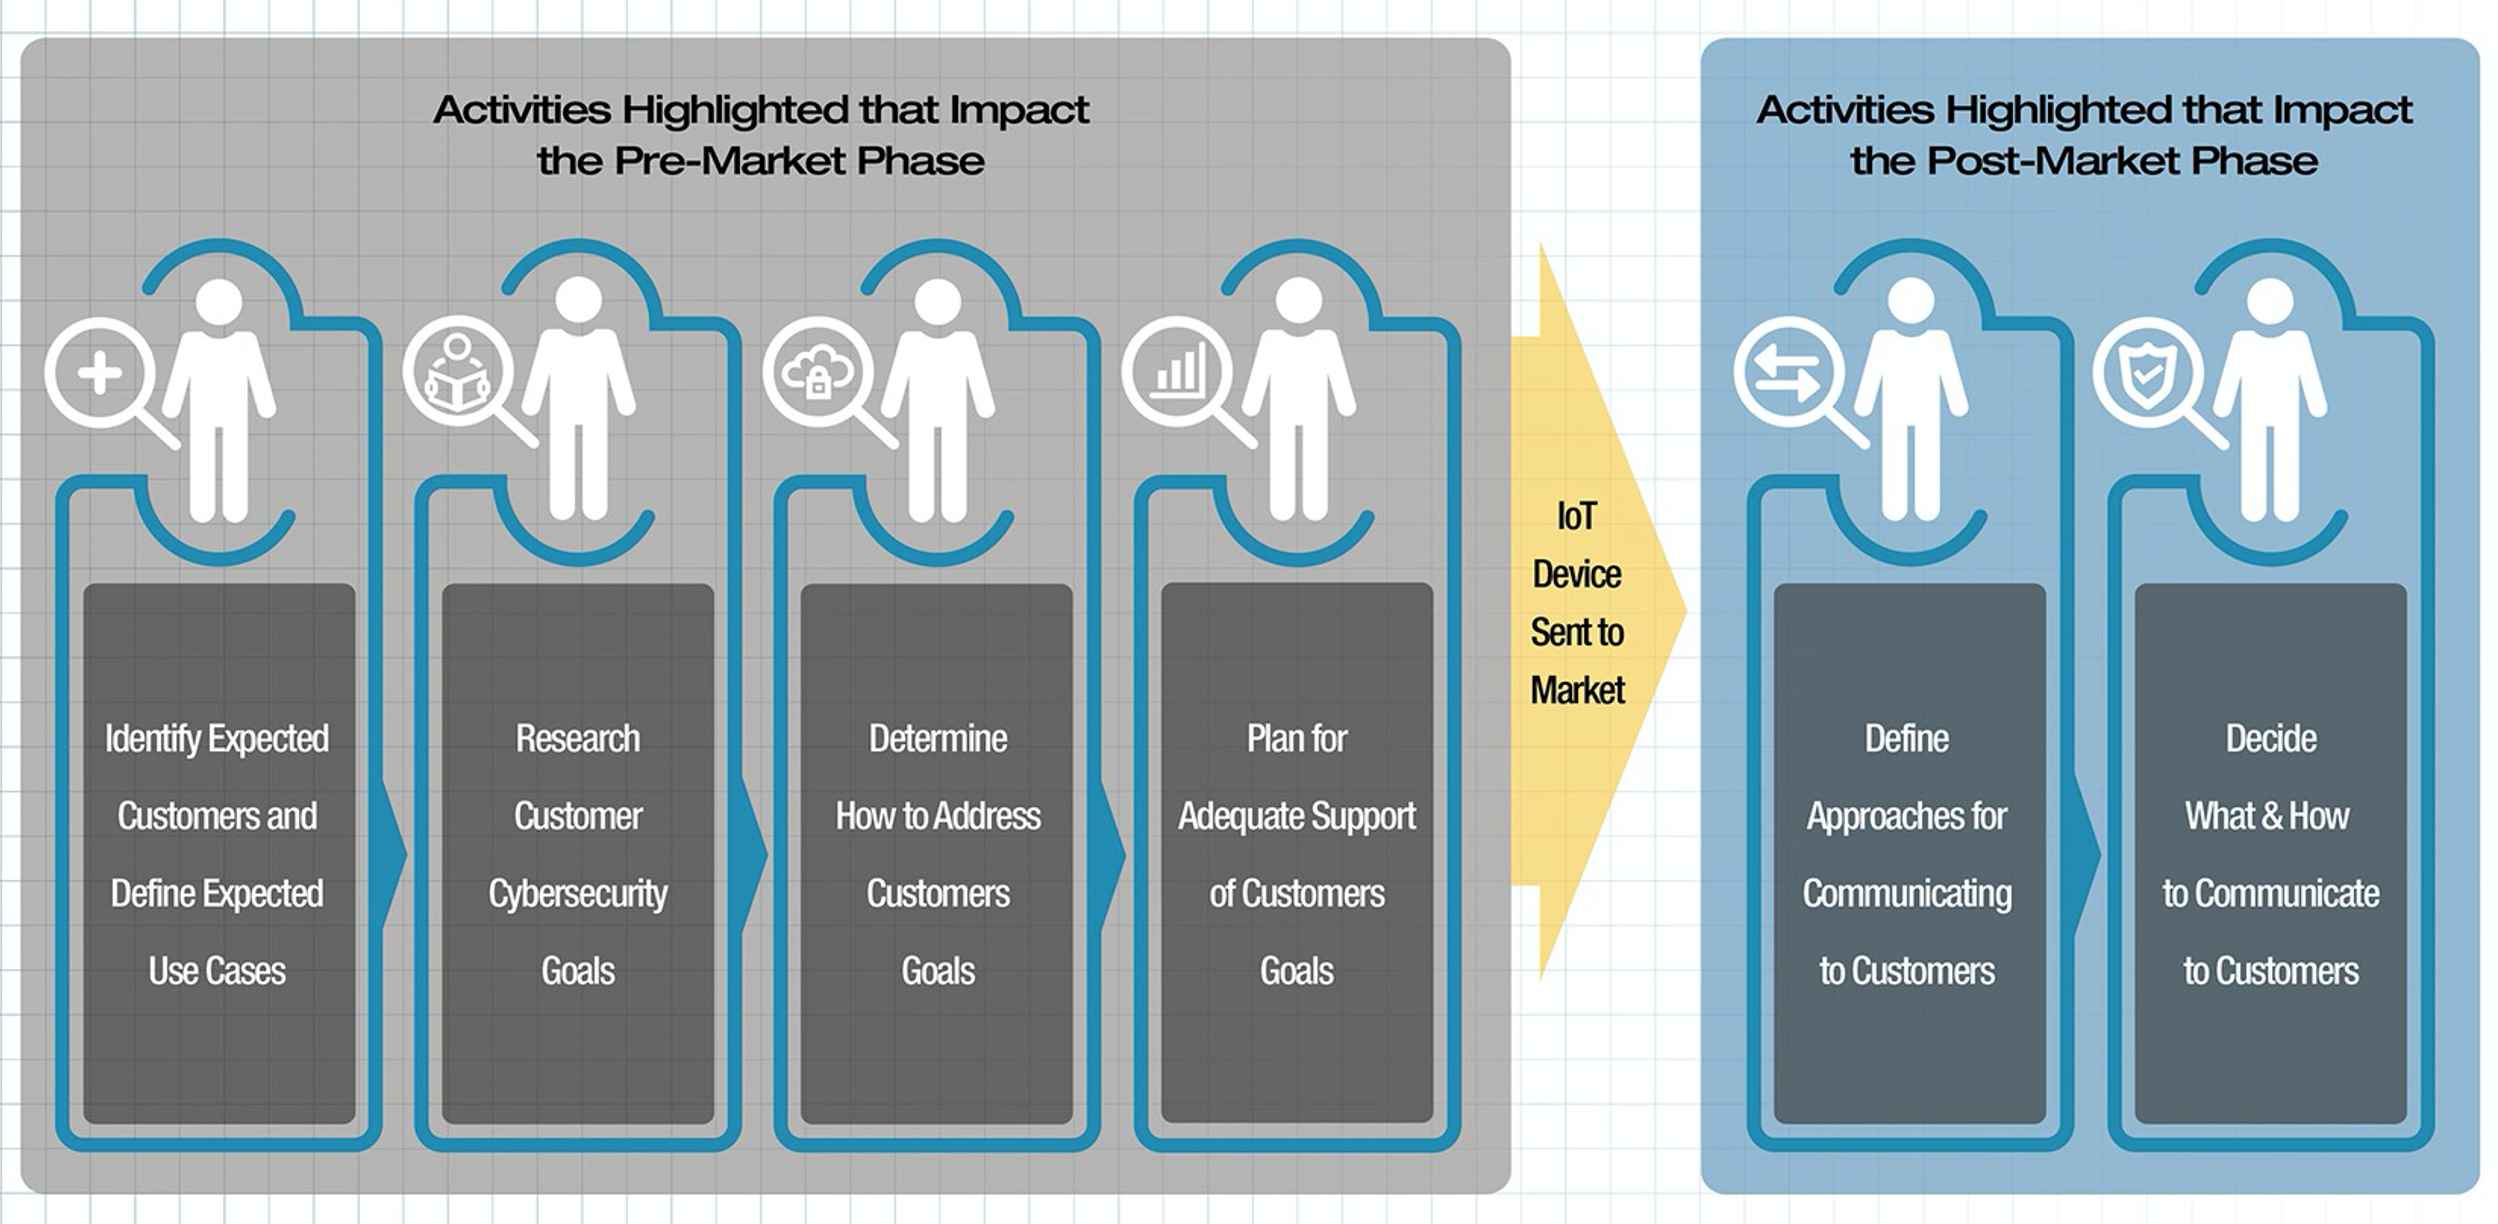 Addressing customer's cybersecurity needs and goals